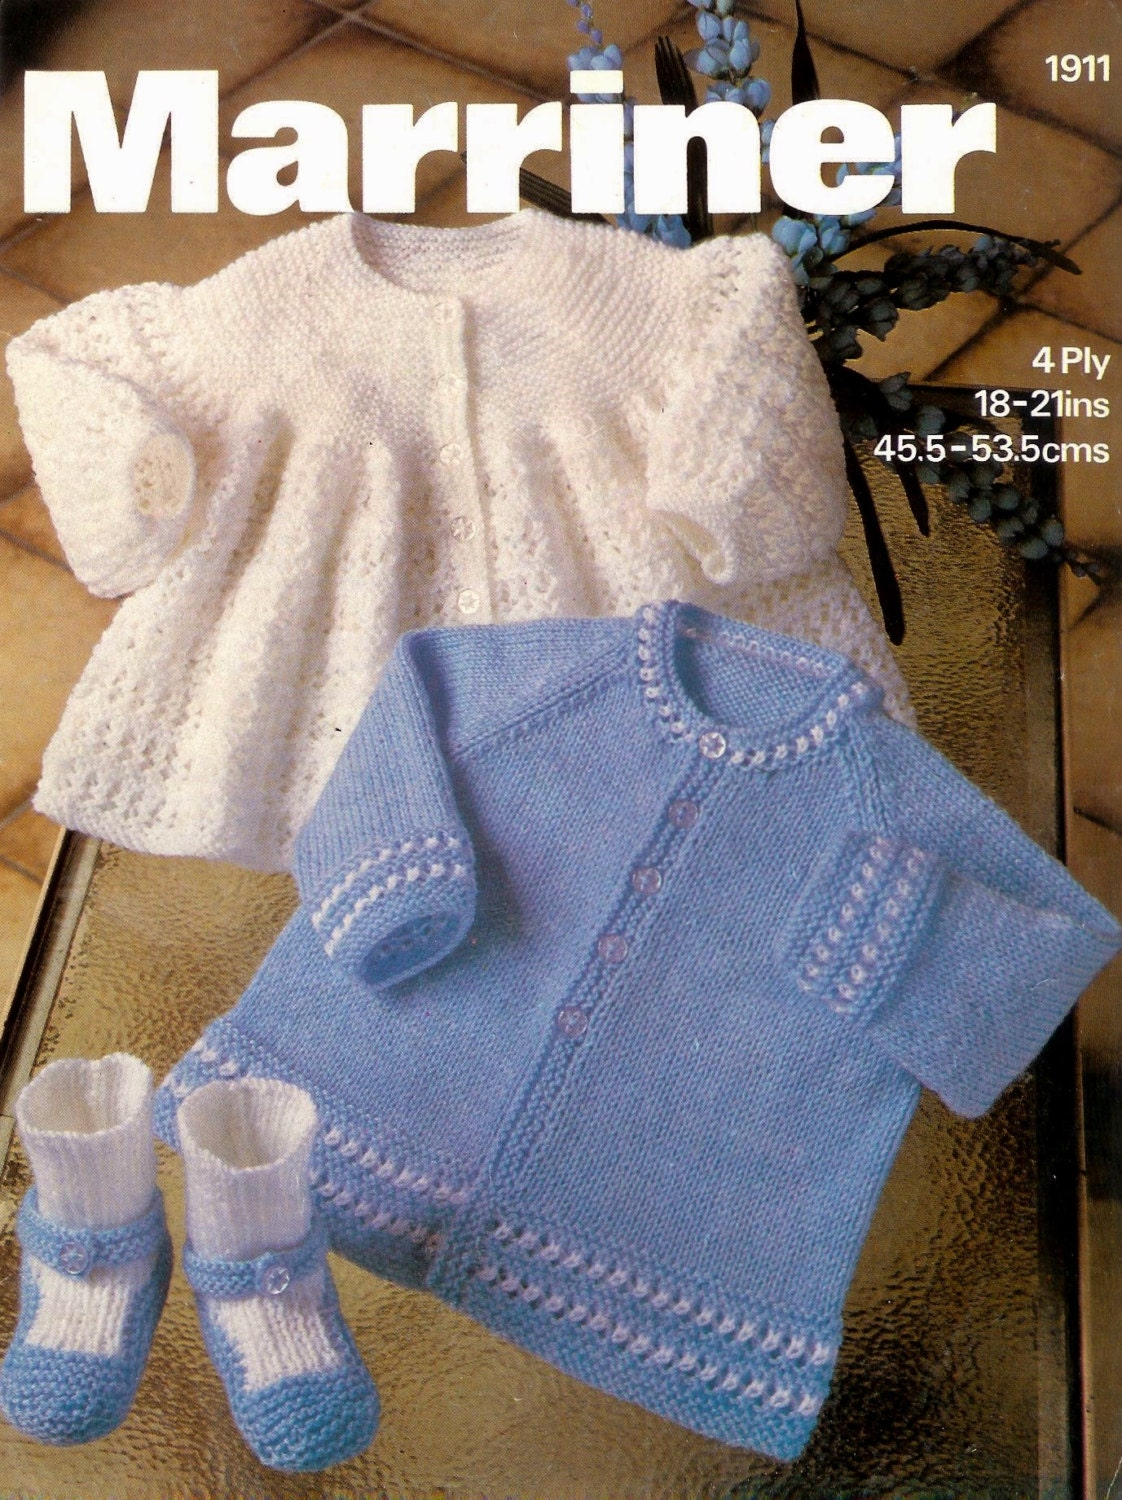 13a69cad4 Baby Matinee Jacket 2 styles and Bootees 4 ply for Sizes 18 - 21 ins ...